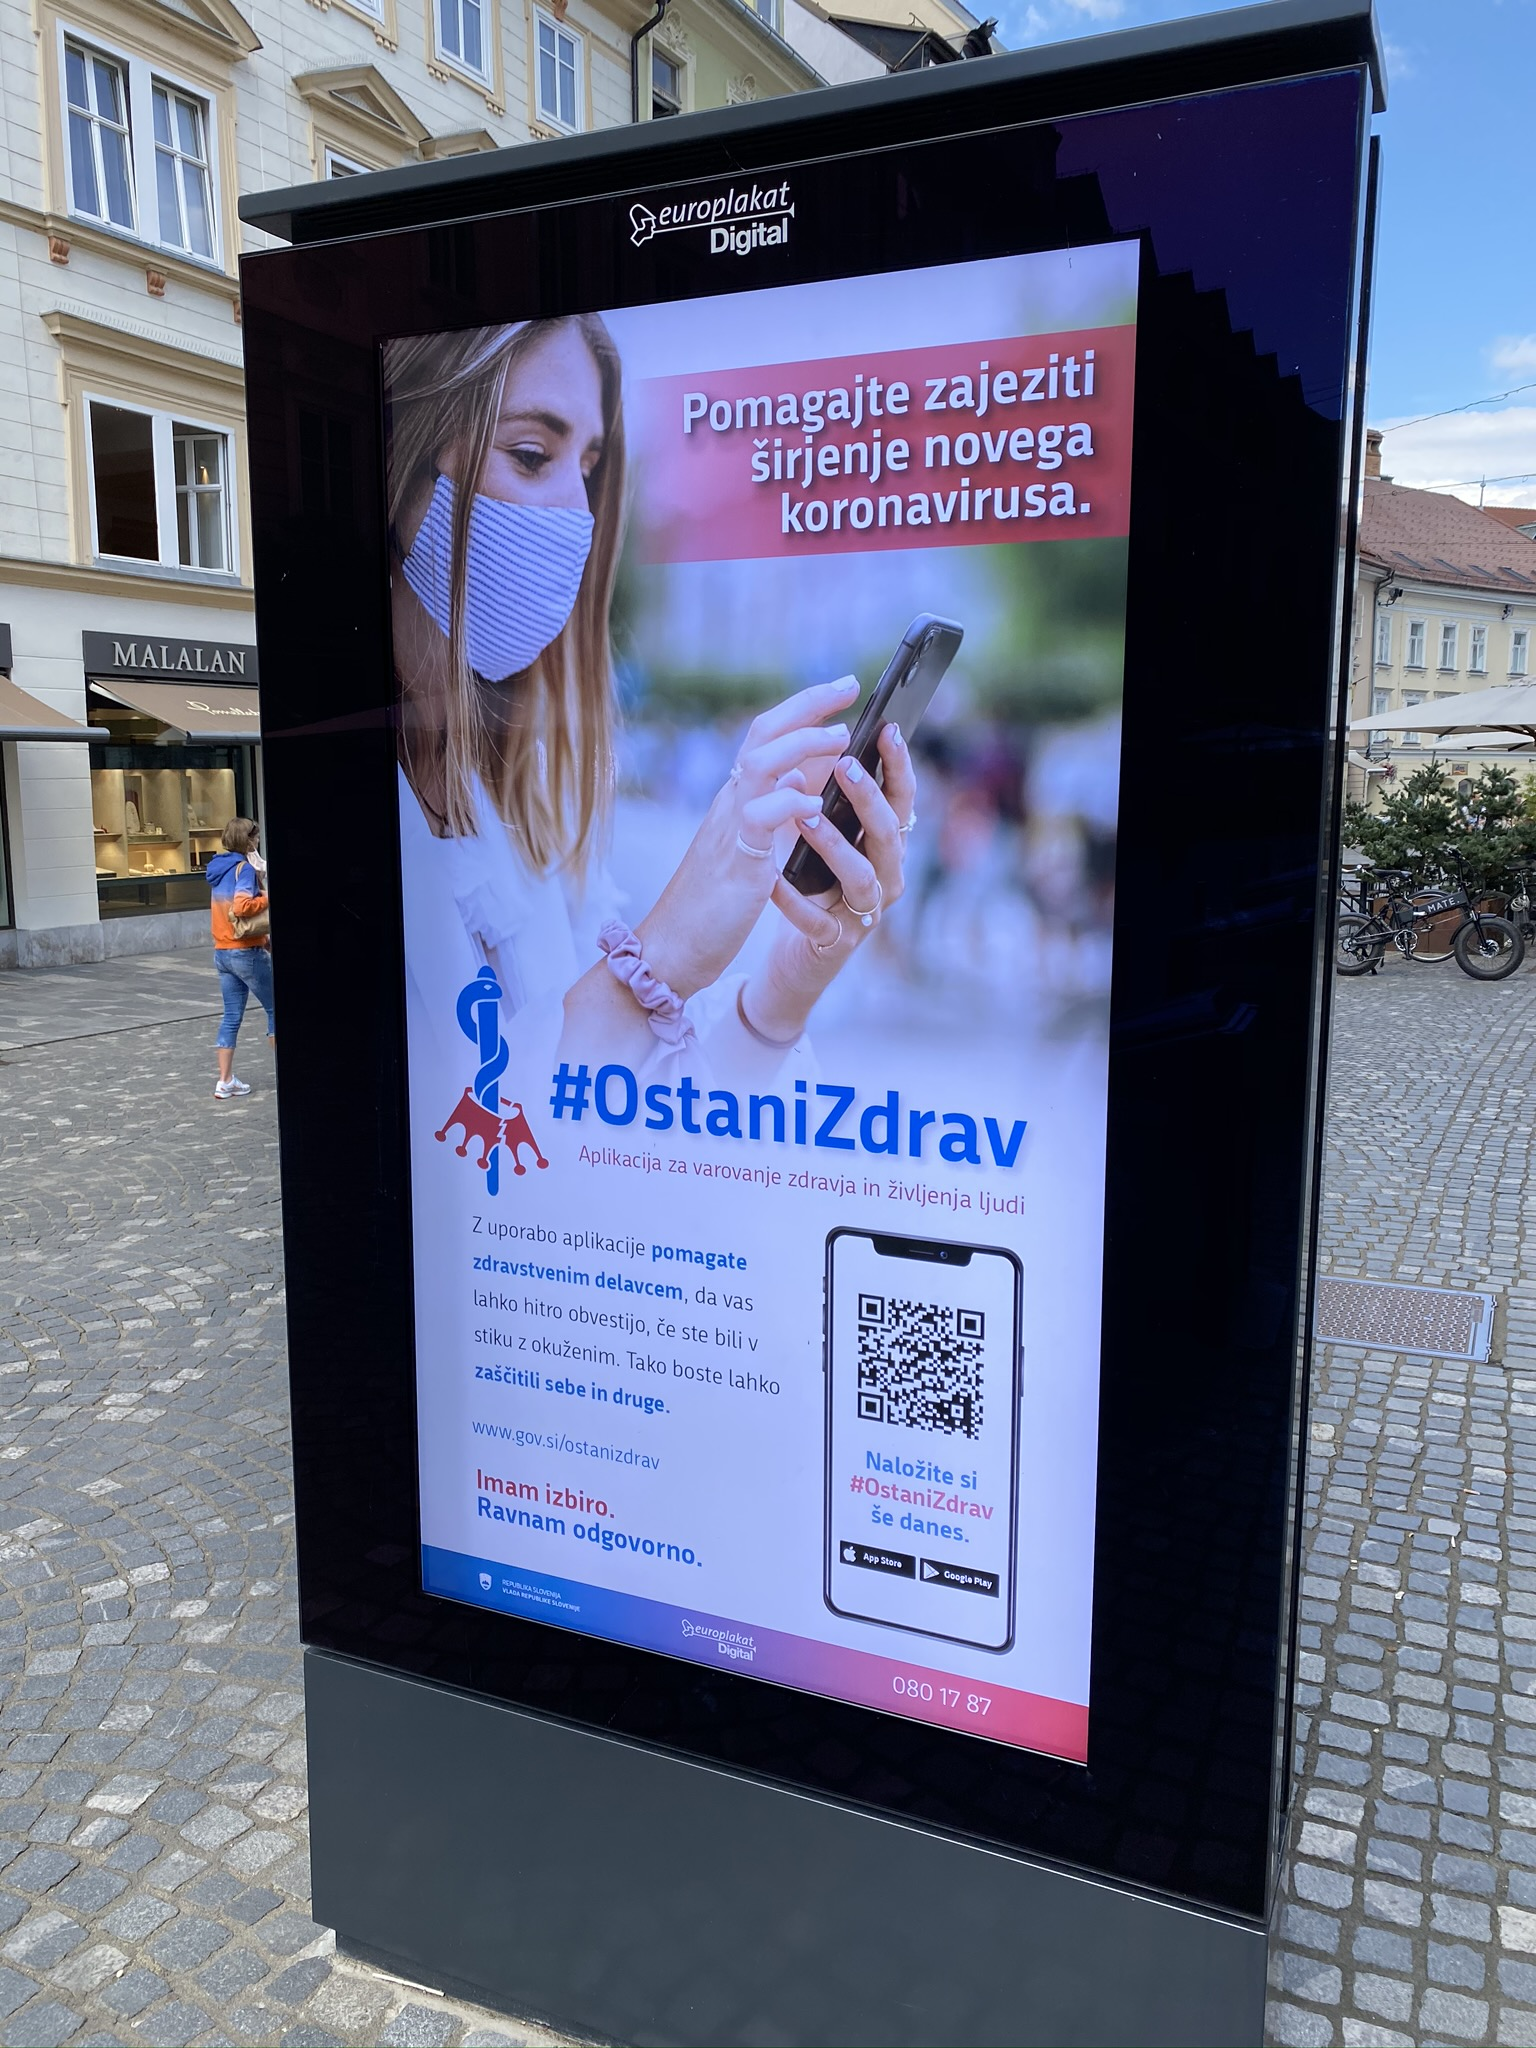 #OstaniZdrav Covid19 mobile application street display in Ljubljana. Photo: Aleksander Hribovšek, 3 September 2020.